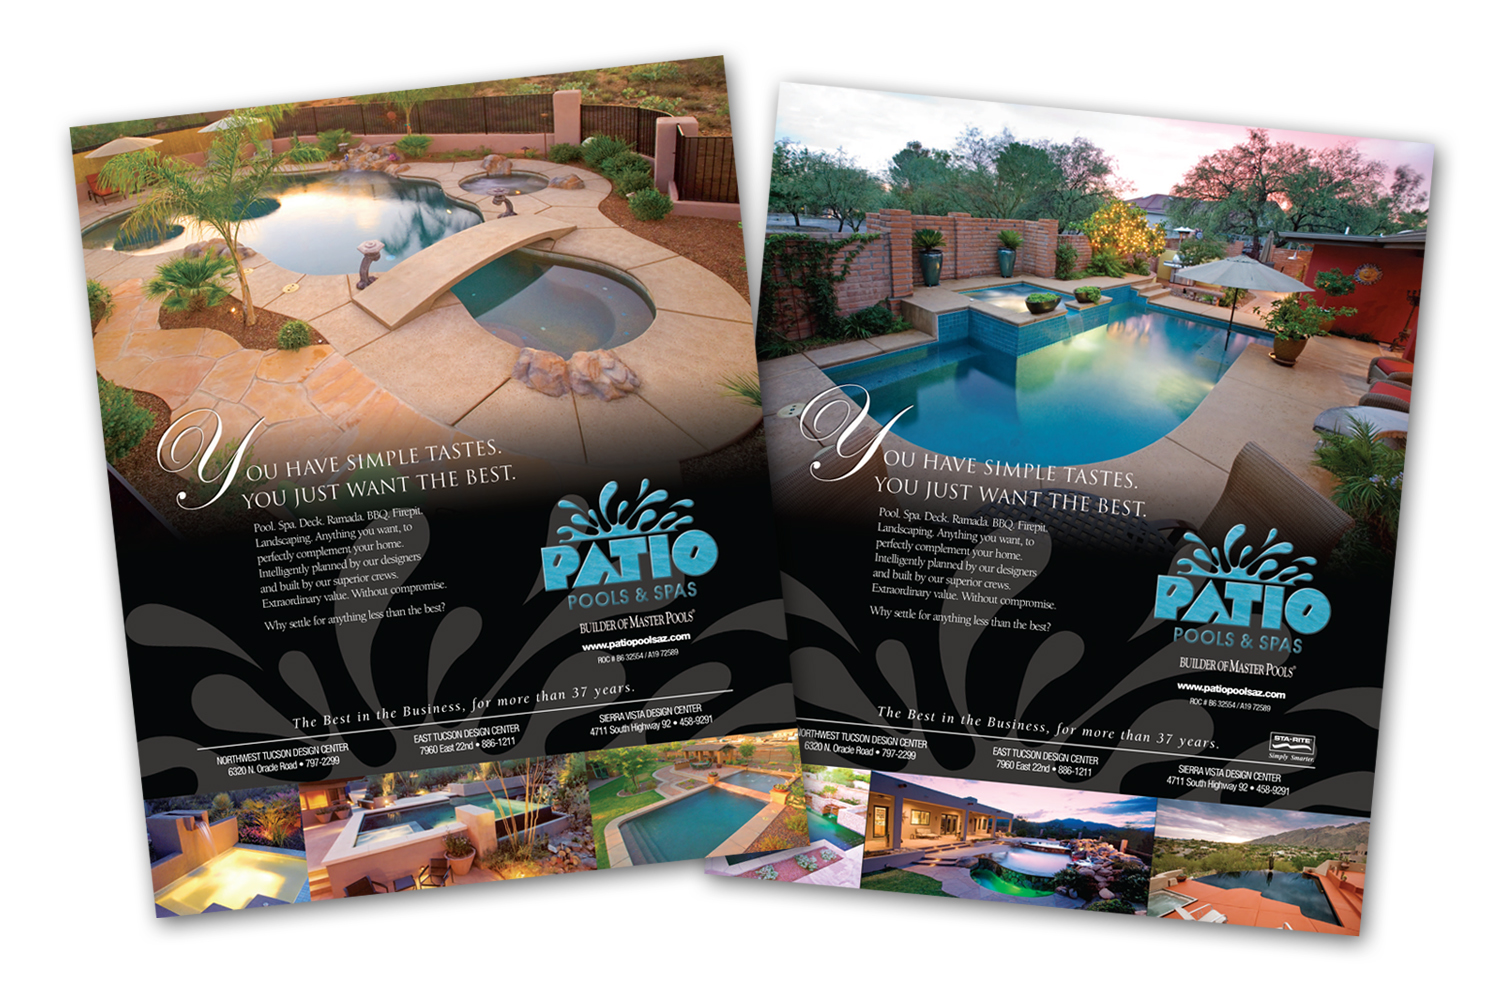 PatioPools ads.jpg